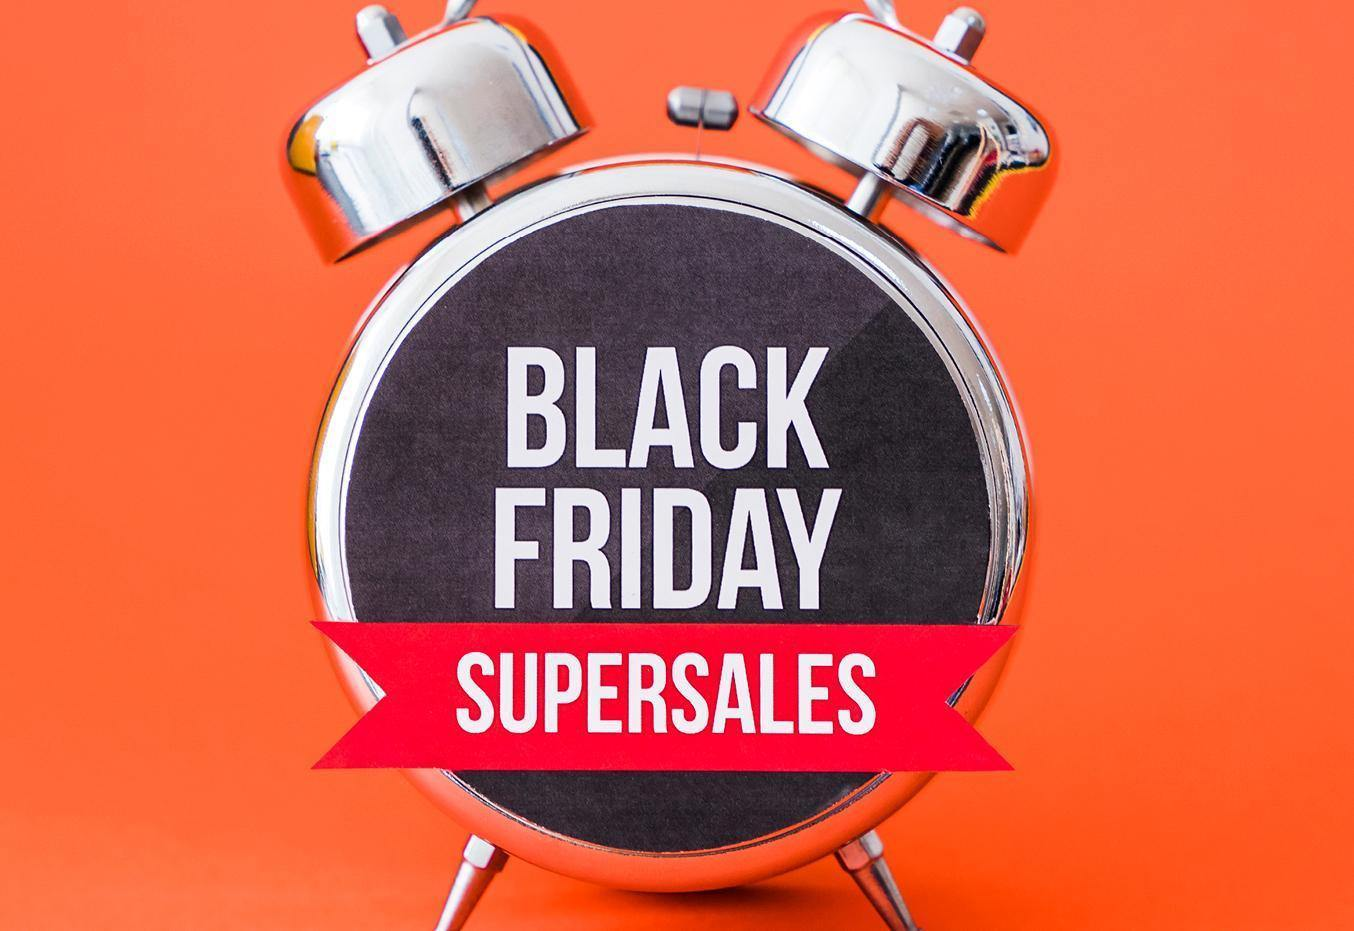 3 Claves para no caer en los trucos de Black Friday